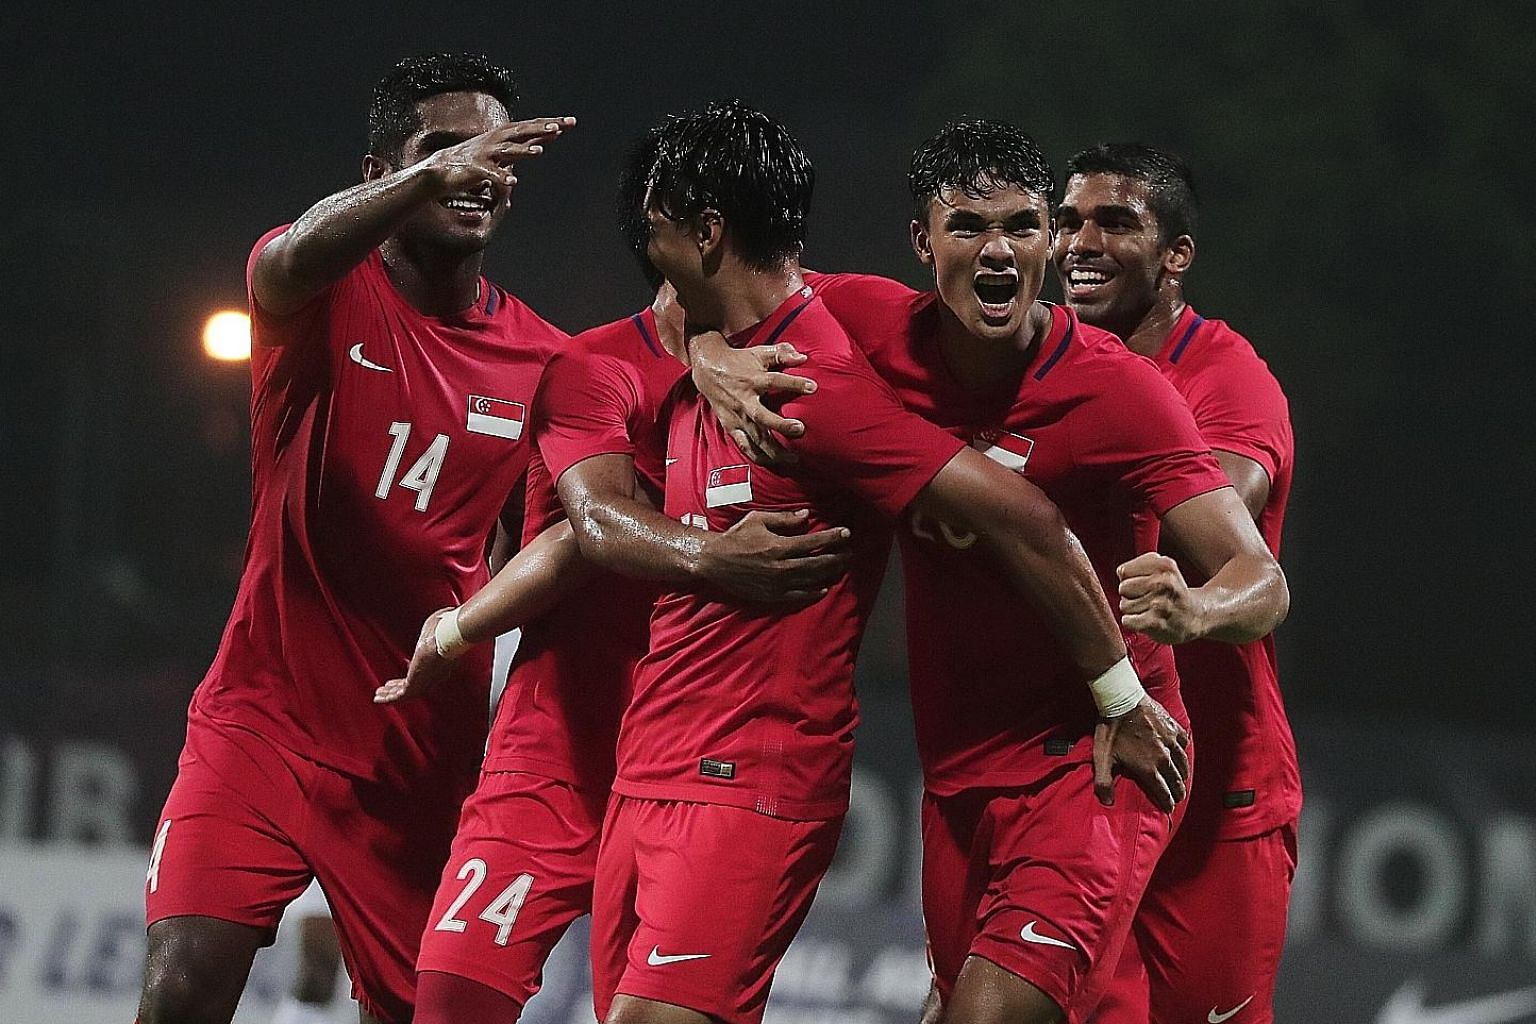 Singapore's players mob scorer Ikhsan Fandi (second from right) and the creator of his goal Shahril Ishak (centre) after the Lions' equaliser earned coach Fandi Ahmad a draw in his first match in charge.